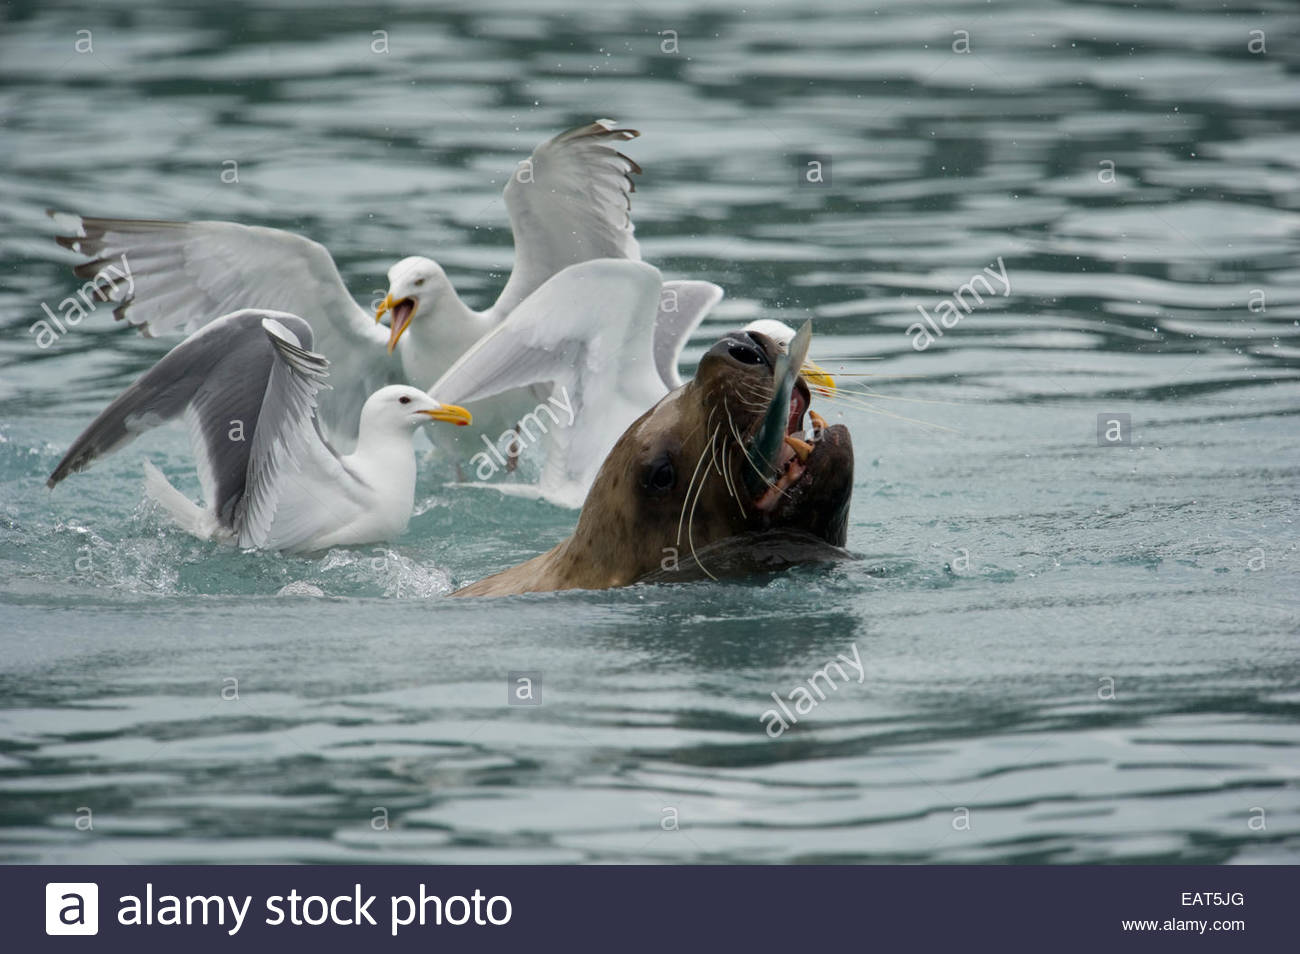 A Steller's sea lion eating a fish among glaucous winged gulls. - Stock Image